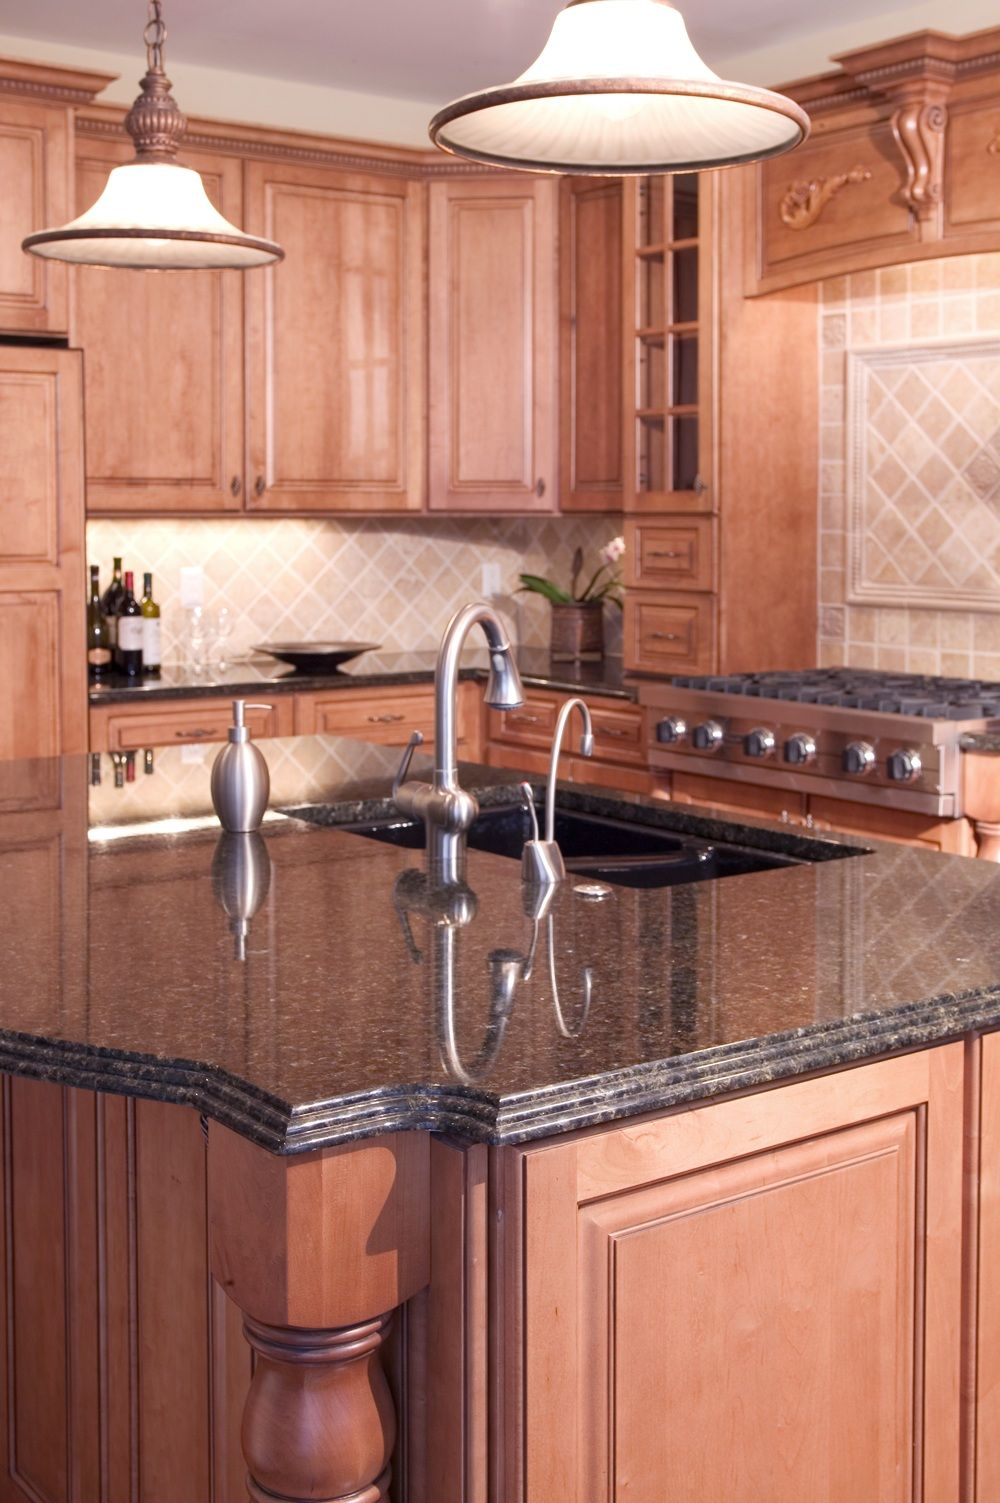 countertops for kitchens kitchen cabinets and countertops beige granite countertop colors yellow granite countertop colors black